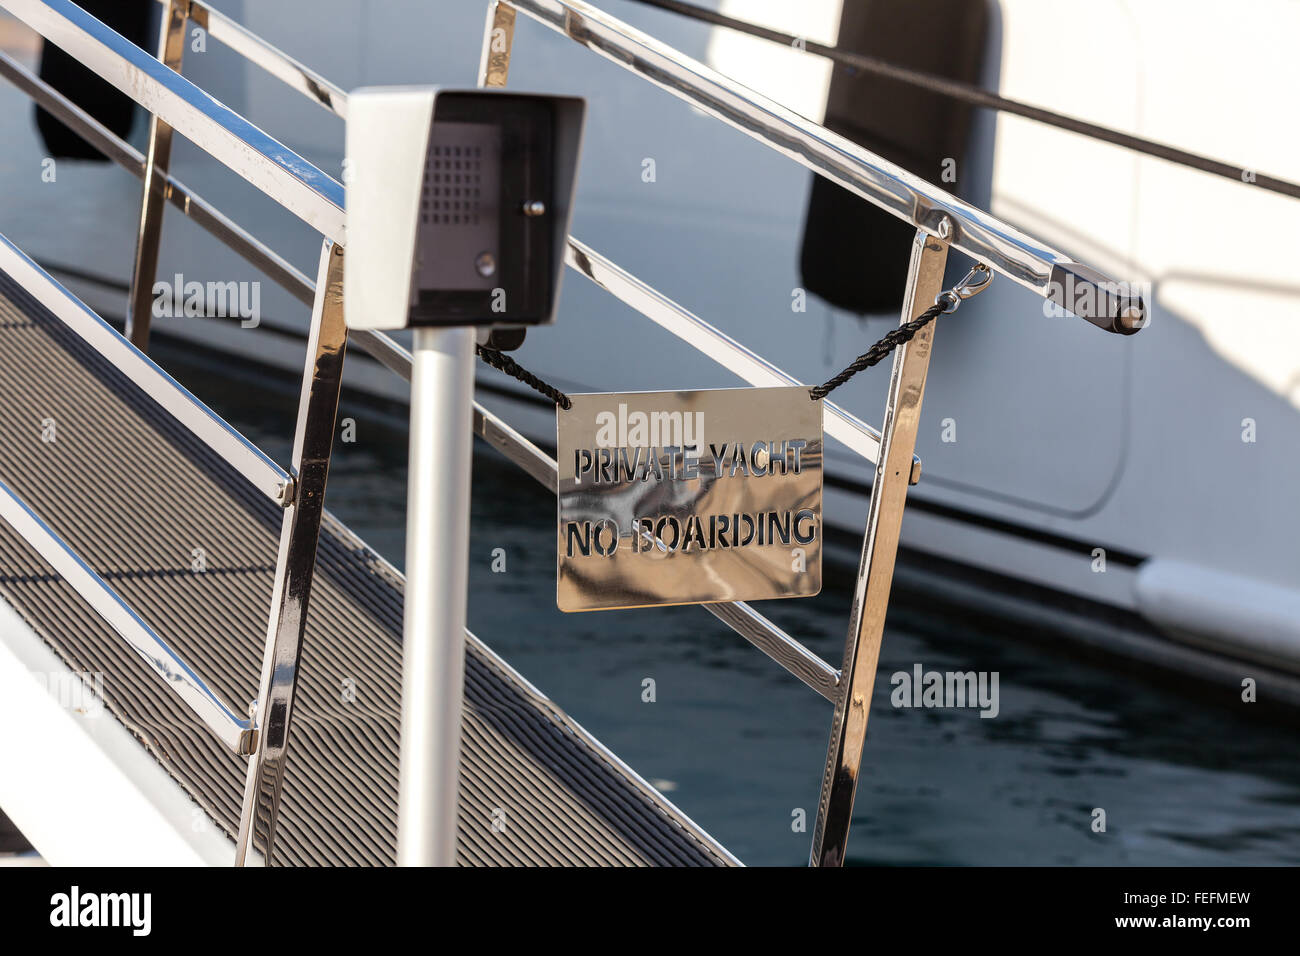 bridge of a private luxury ship with a no entry private yacht sign. no boarding - Stock Image